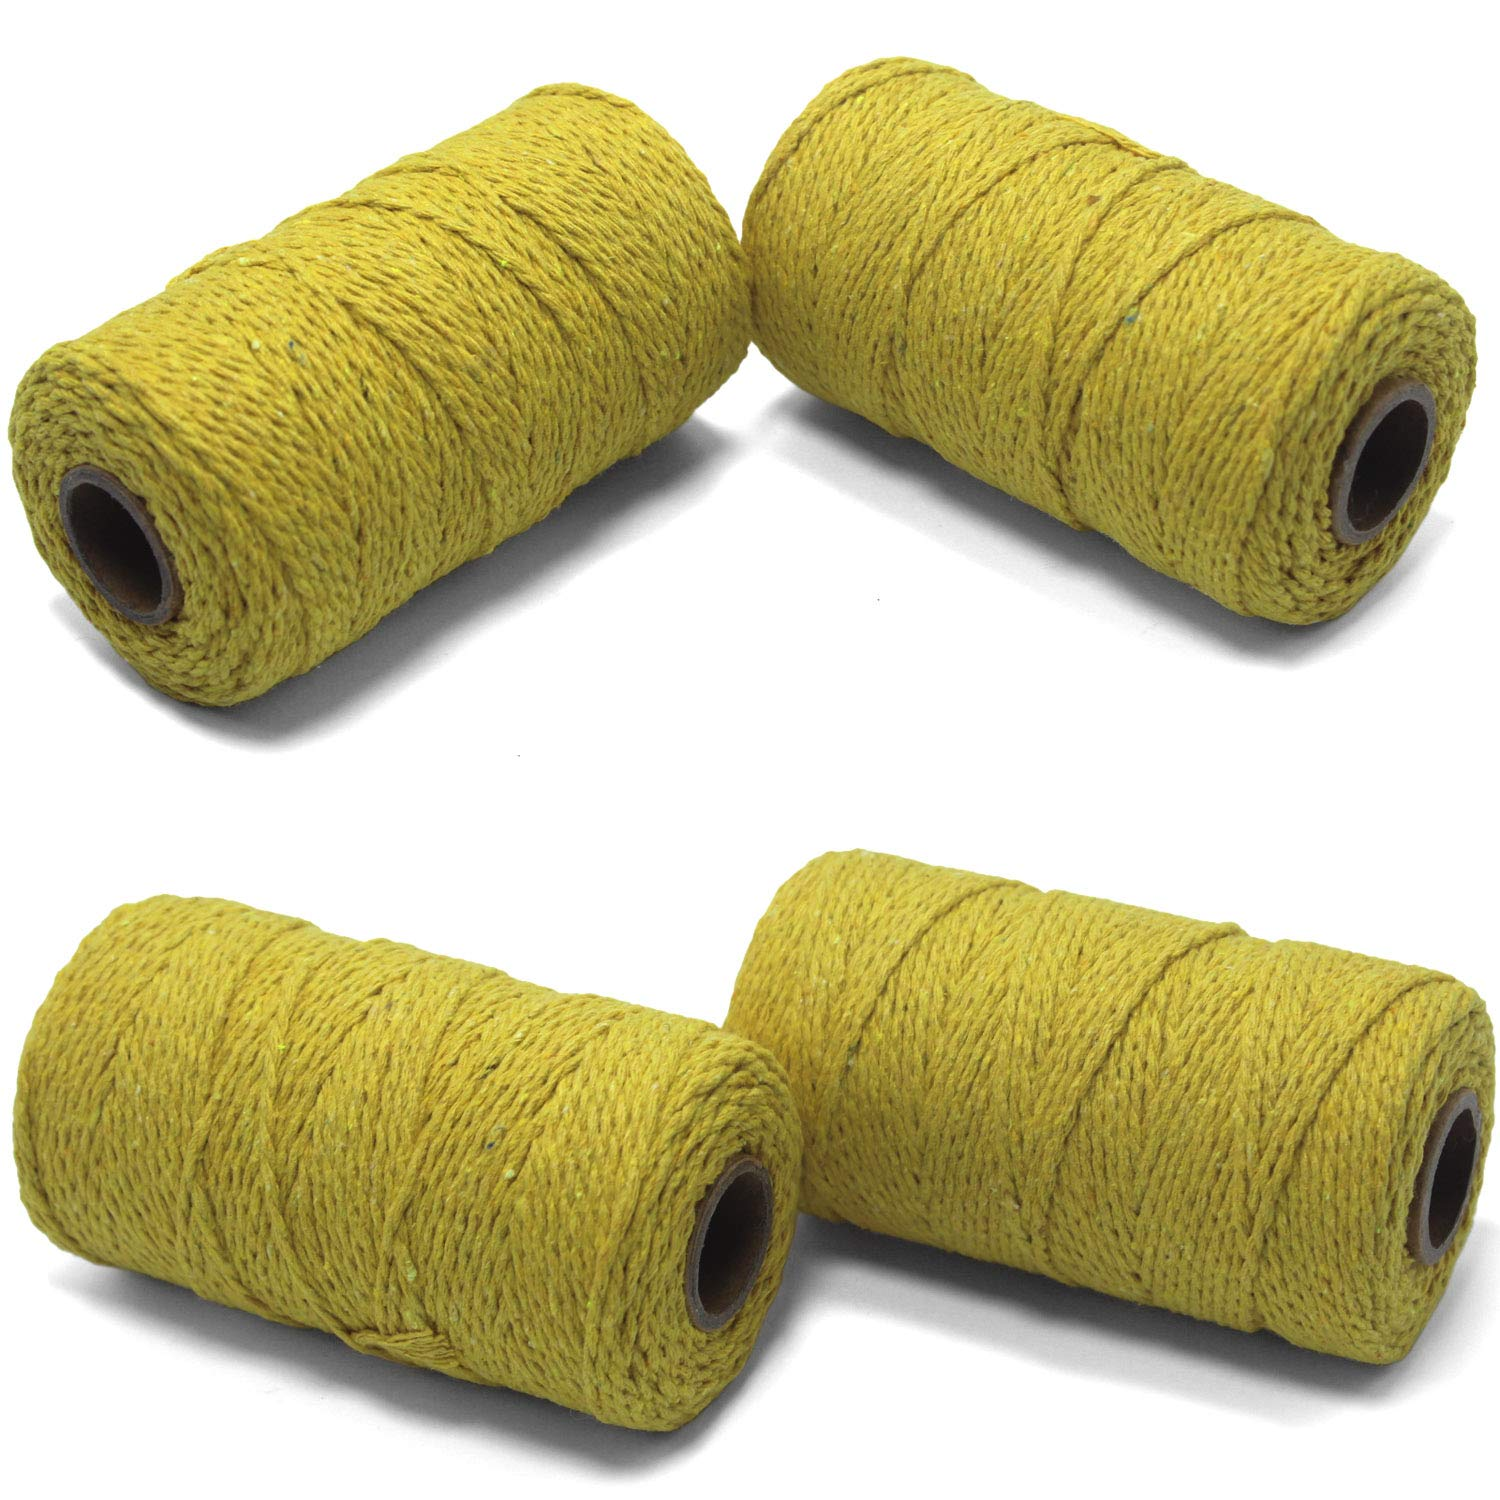 100M Colorful Cotton Thread Rope Bakers Twine DIY Sewing Packaging Supplies